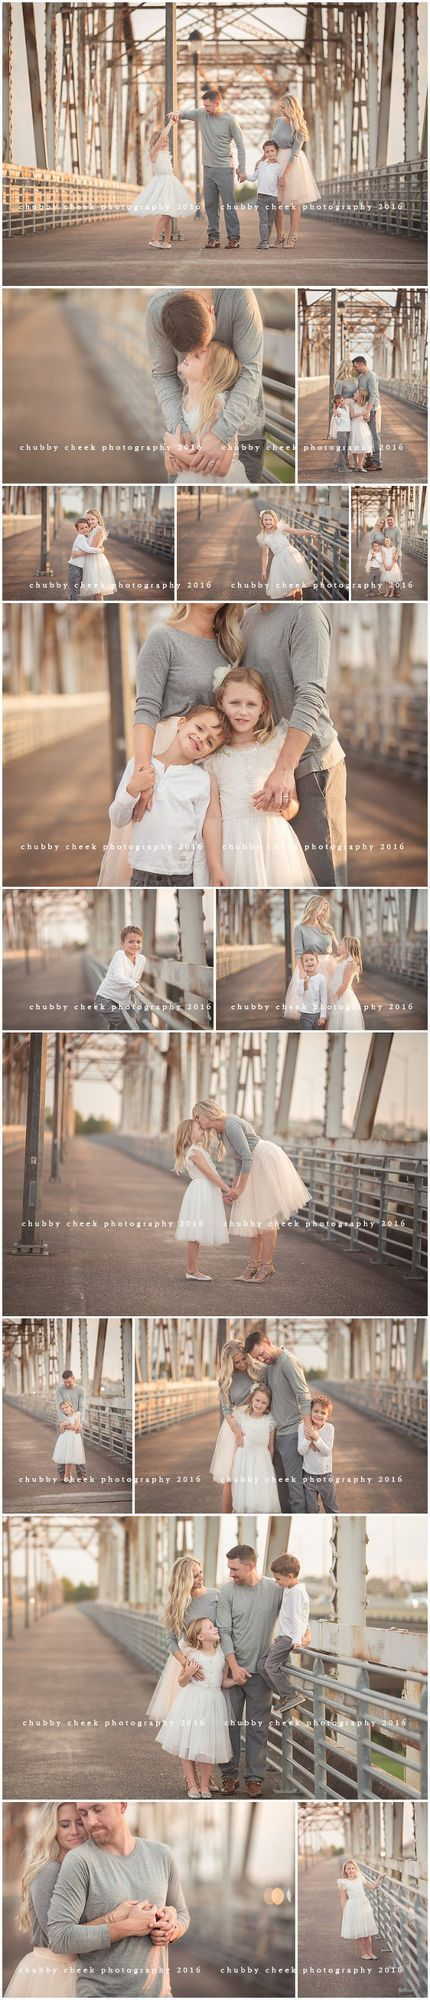 Family Photography Tips: This is what family sessions are all about! – the woodlands texas family photographer chubby cheek photography.